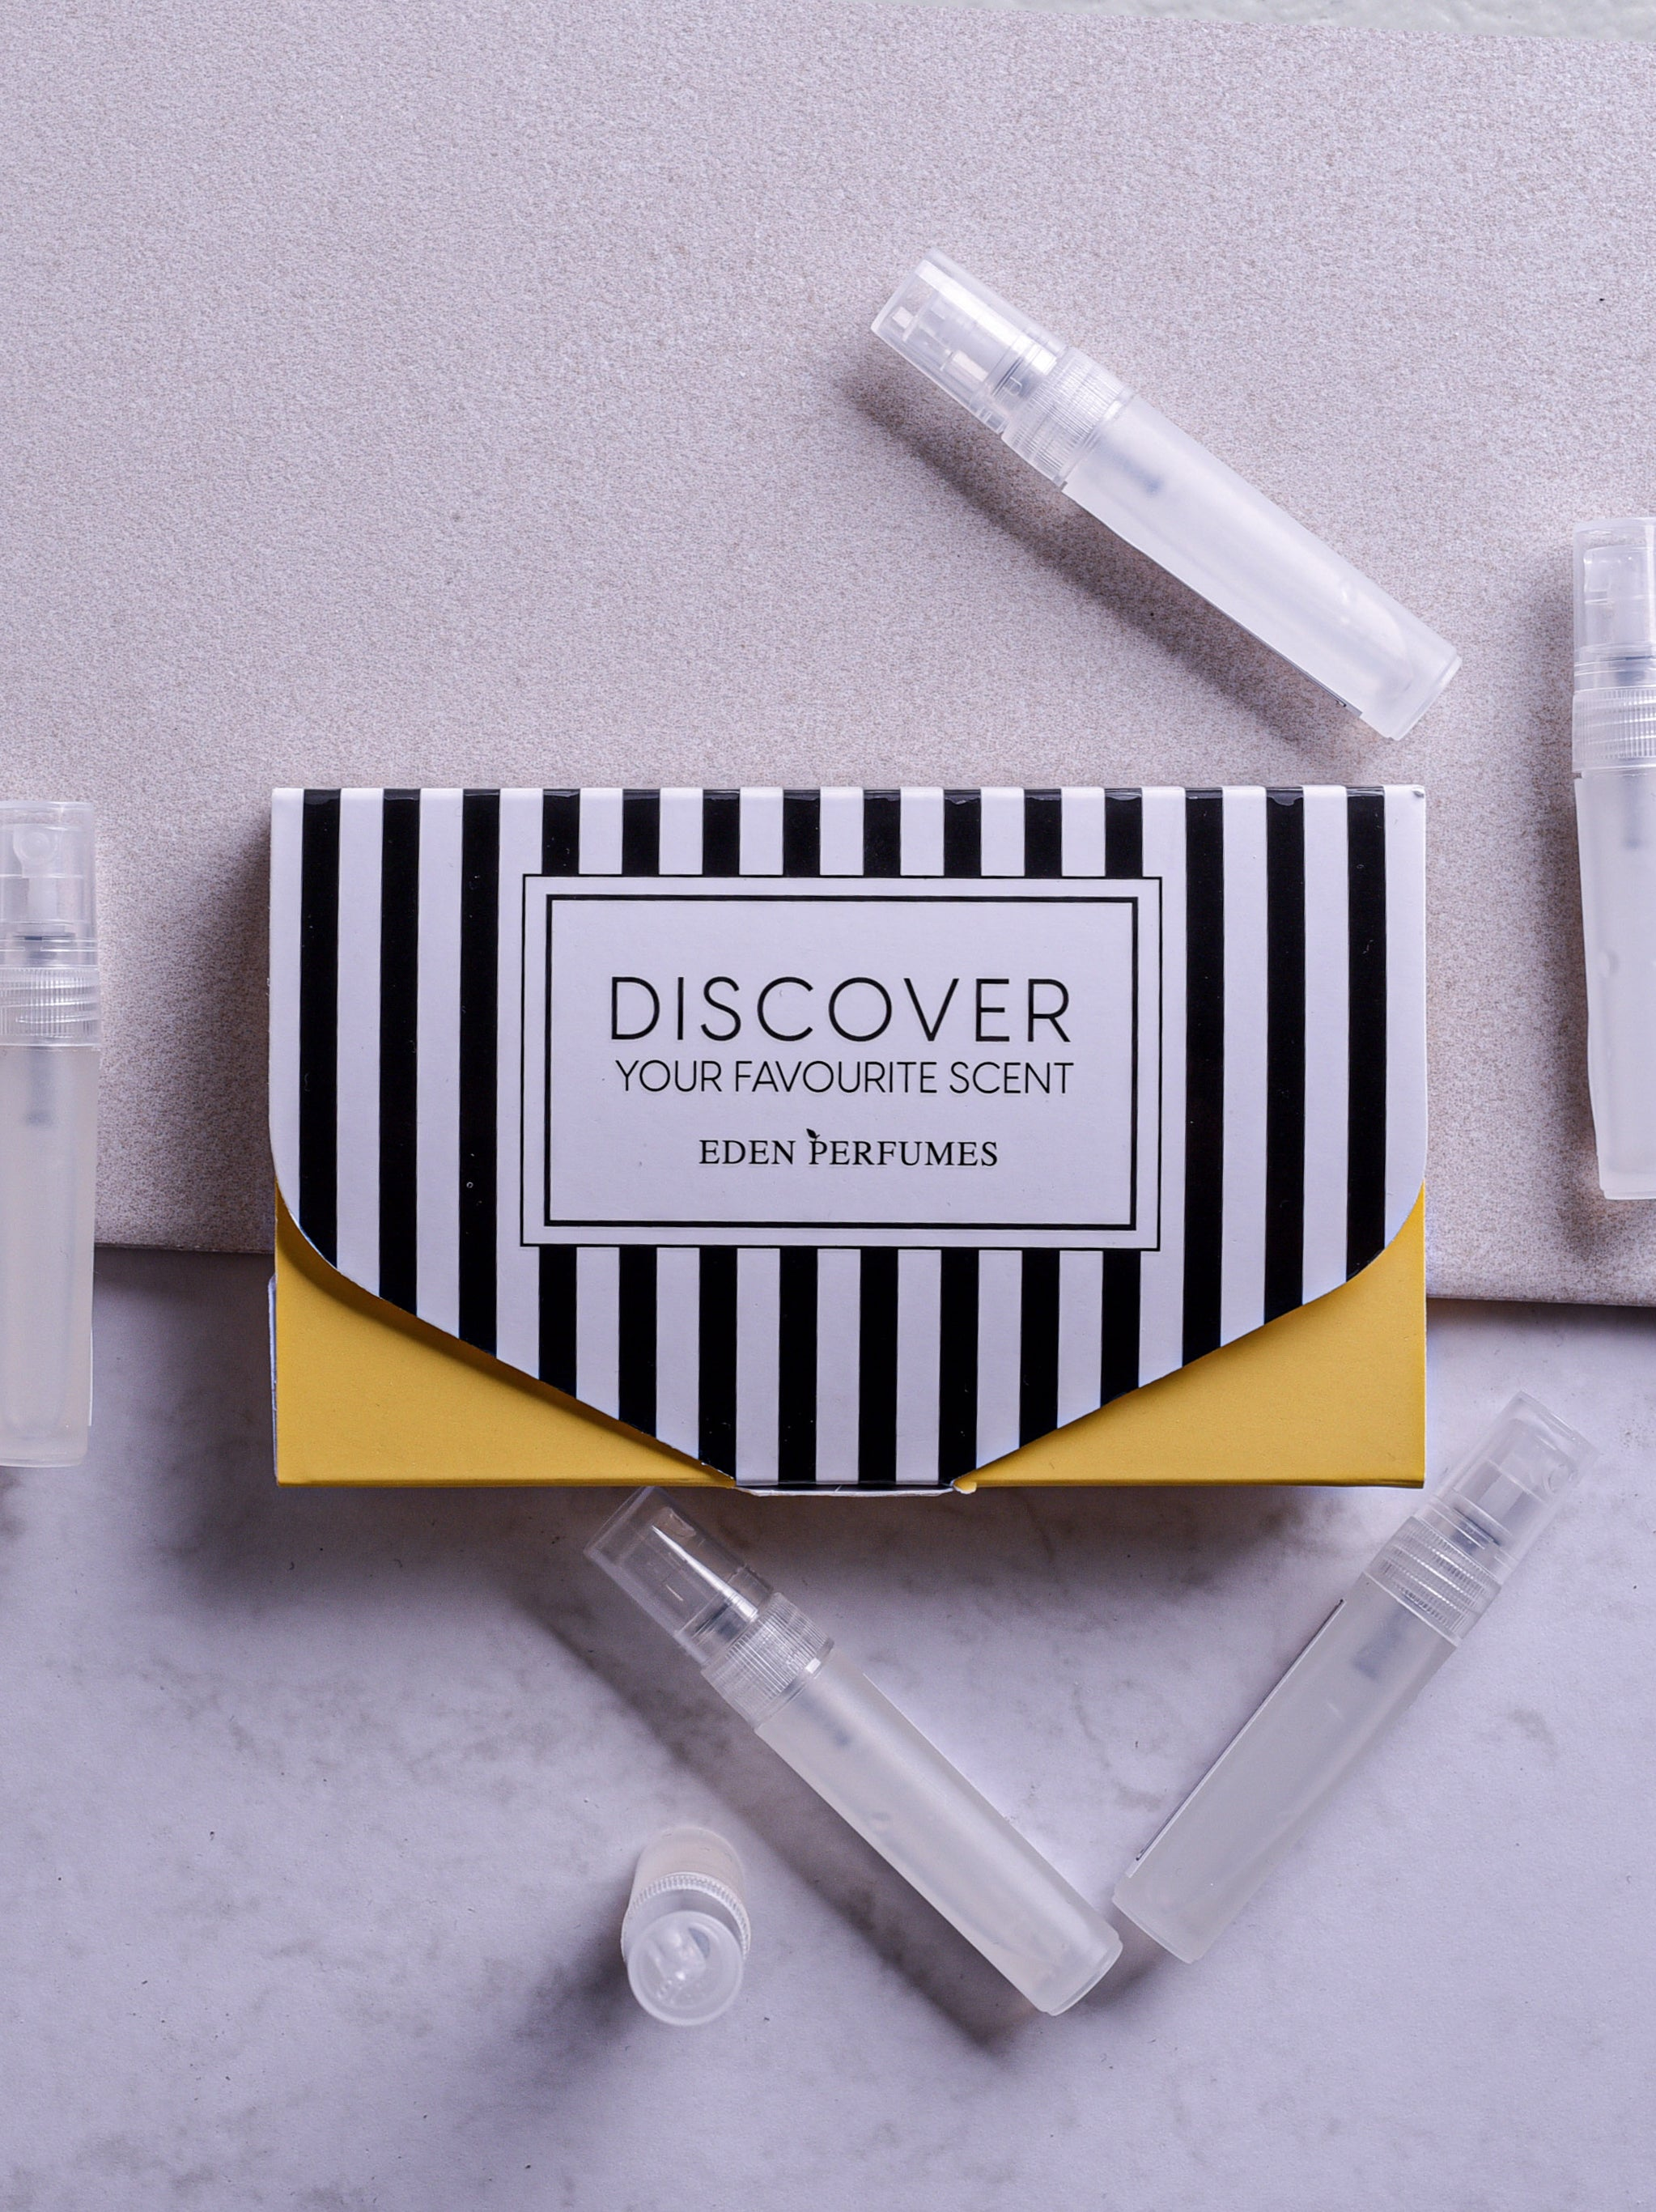 Best Seller Discovery Kit